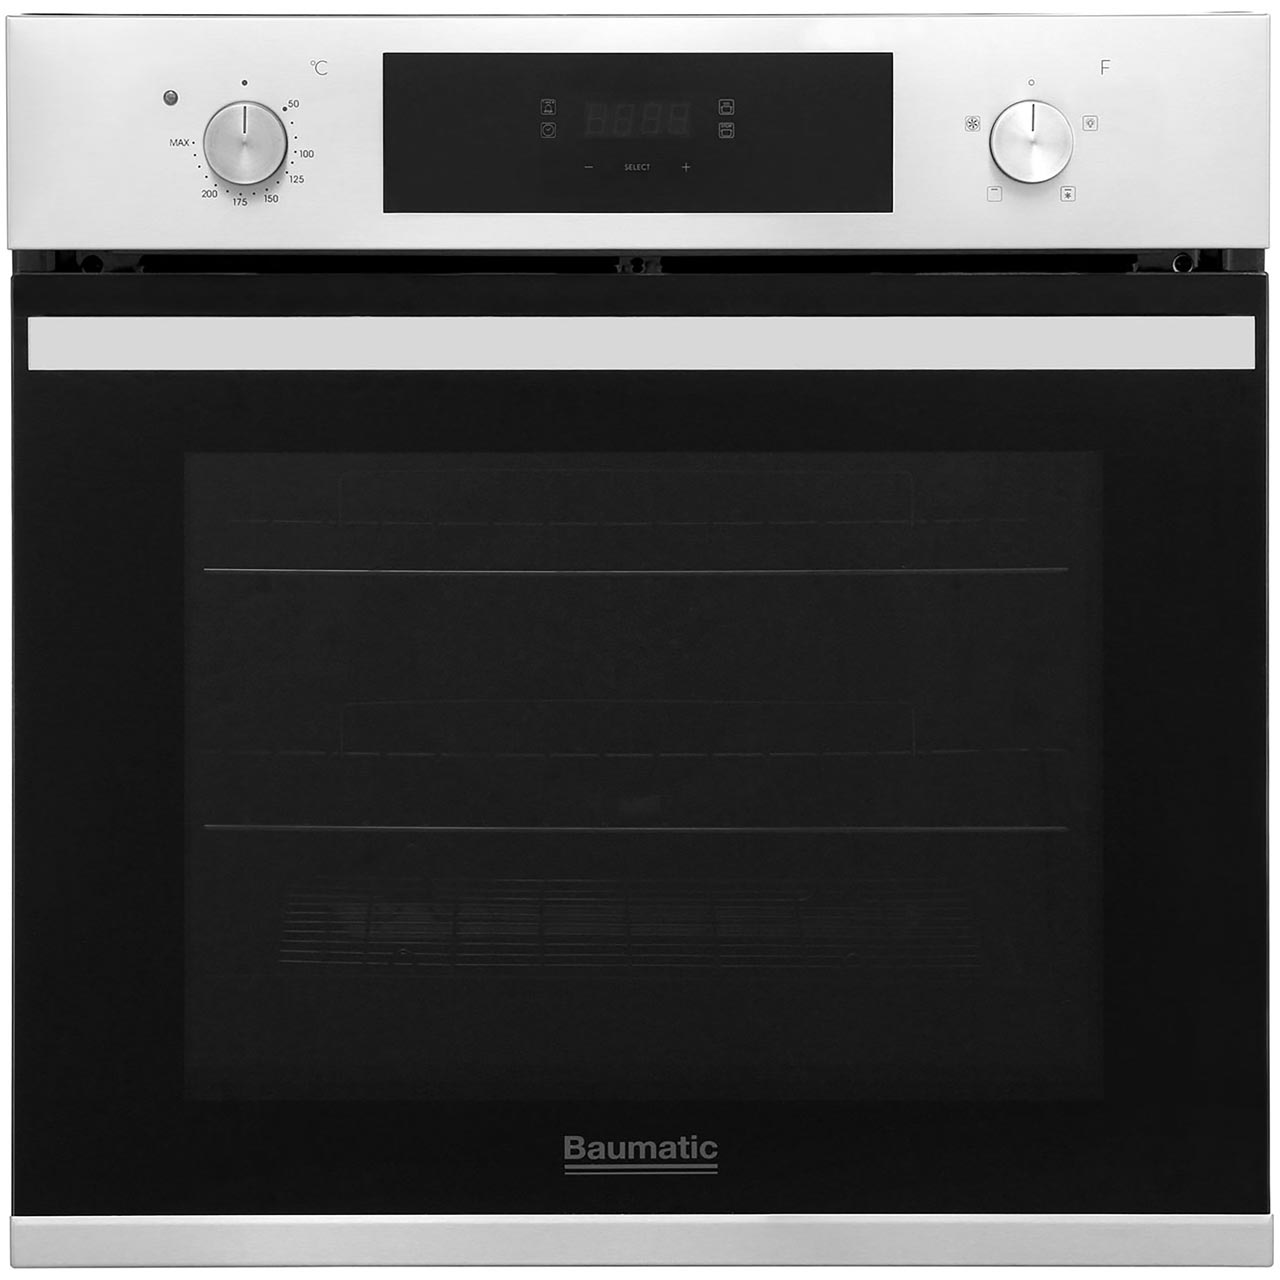 Single Oven With Grill Part - 20: BOFT604X_SS | Baumatic Single Oven | Grill Setting | Ao.com